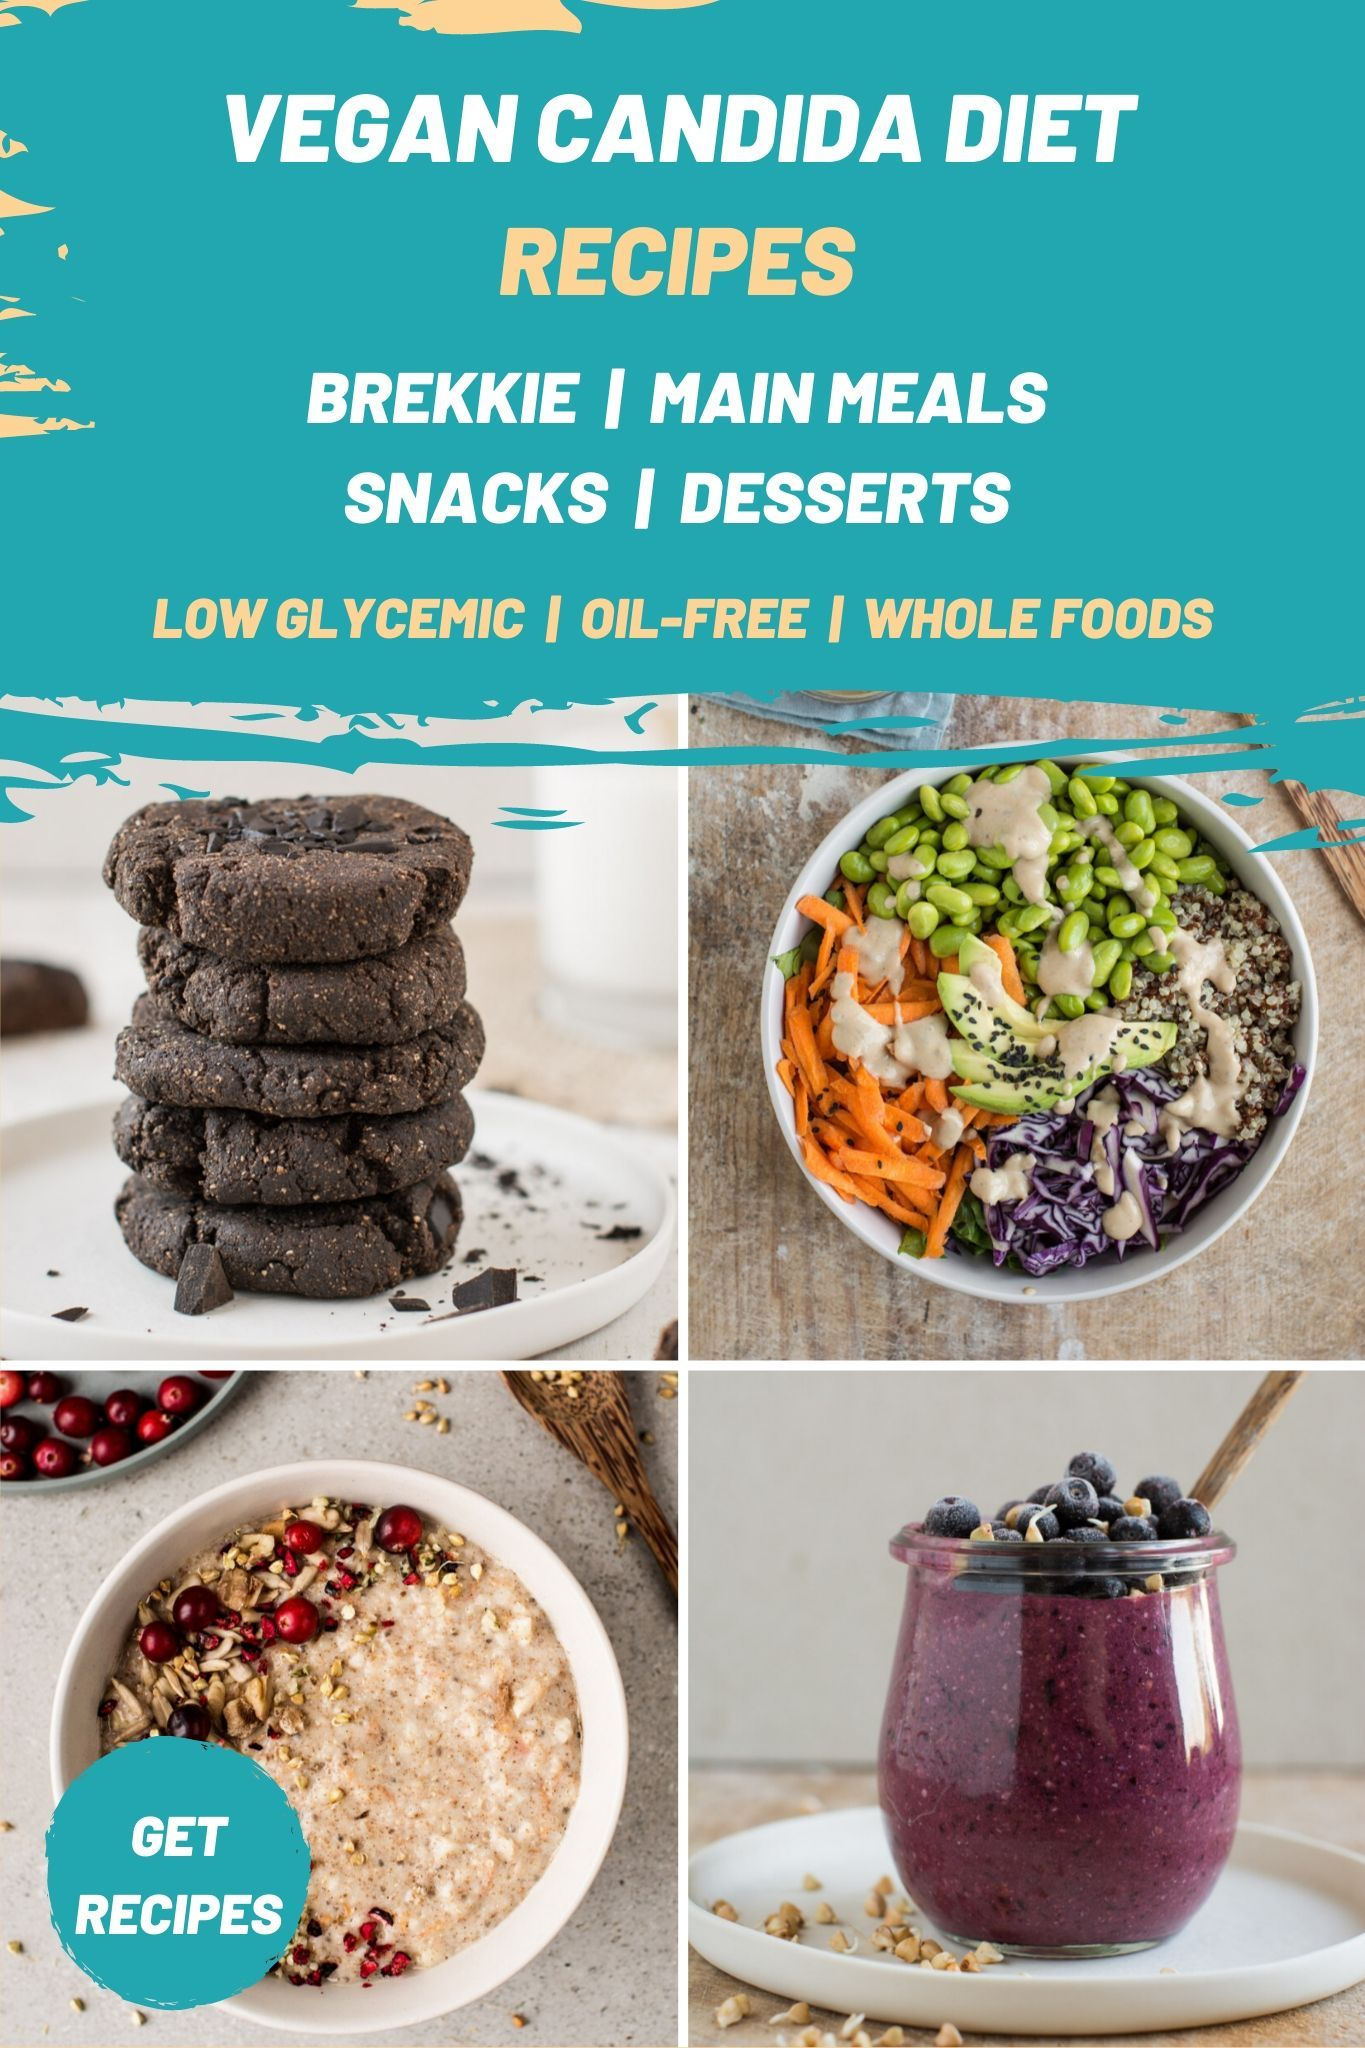 Candida Recipes Archives Nutriplanet Candida Recipes Candida Diet Recipes Candida Diet